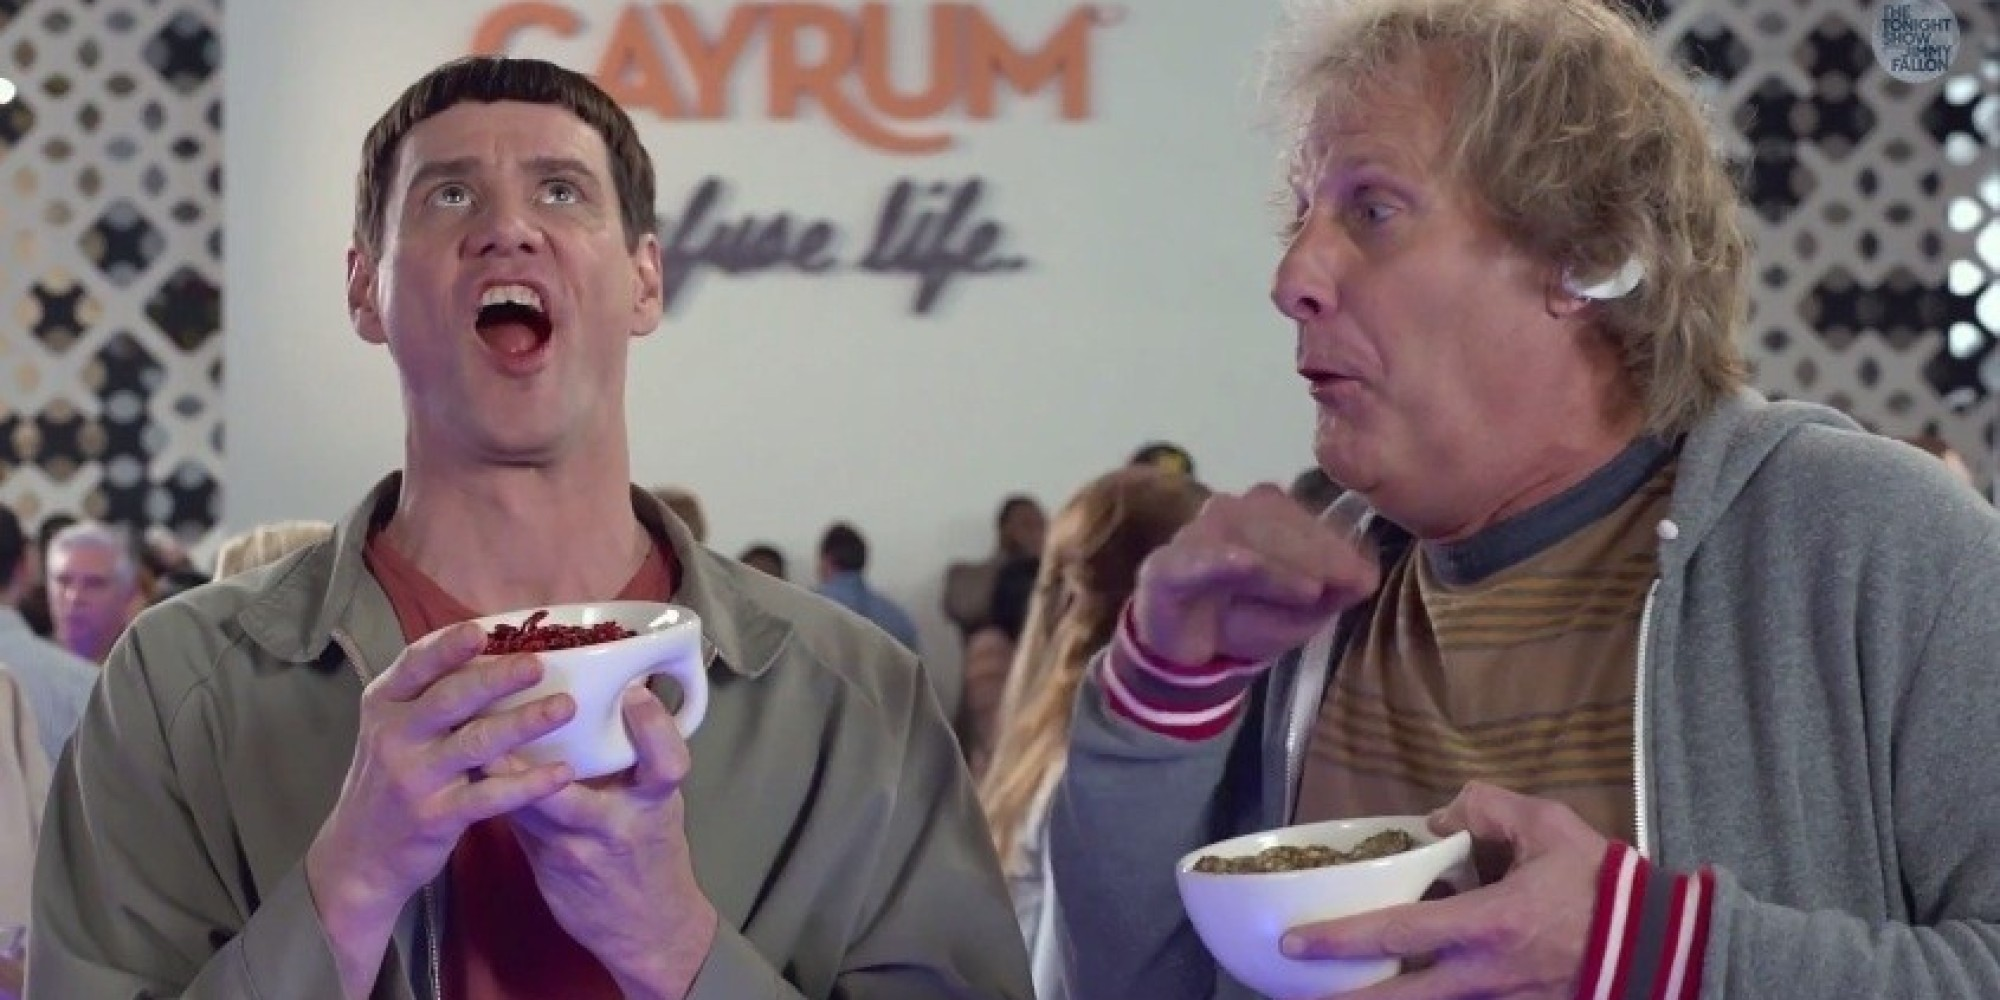 Dumb and dumber to 3